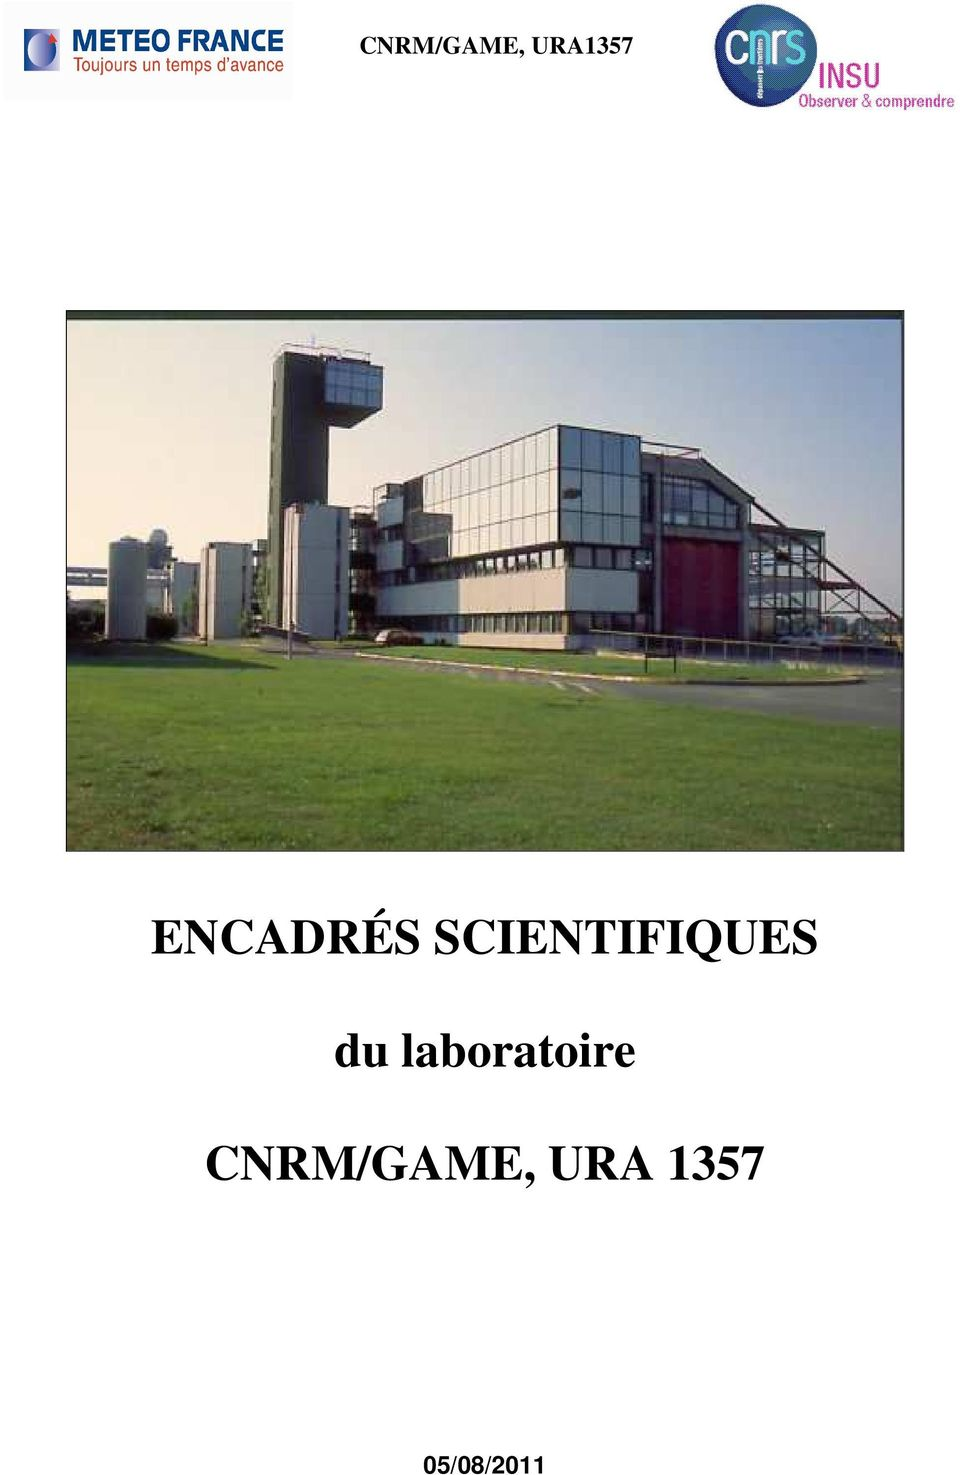 SCIENTIFIQUES du